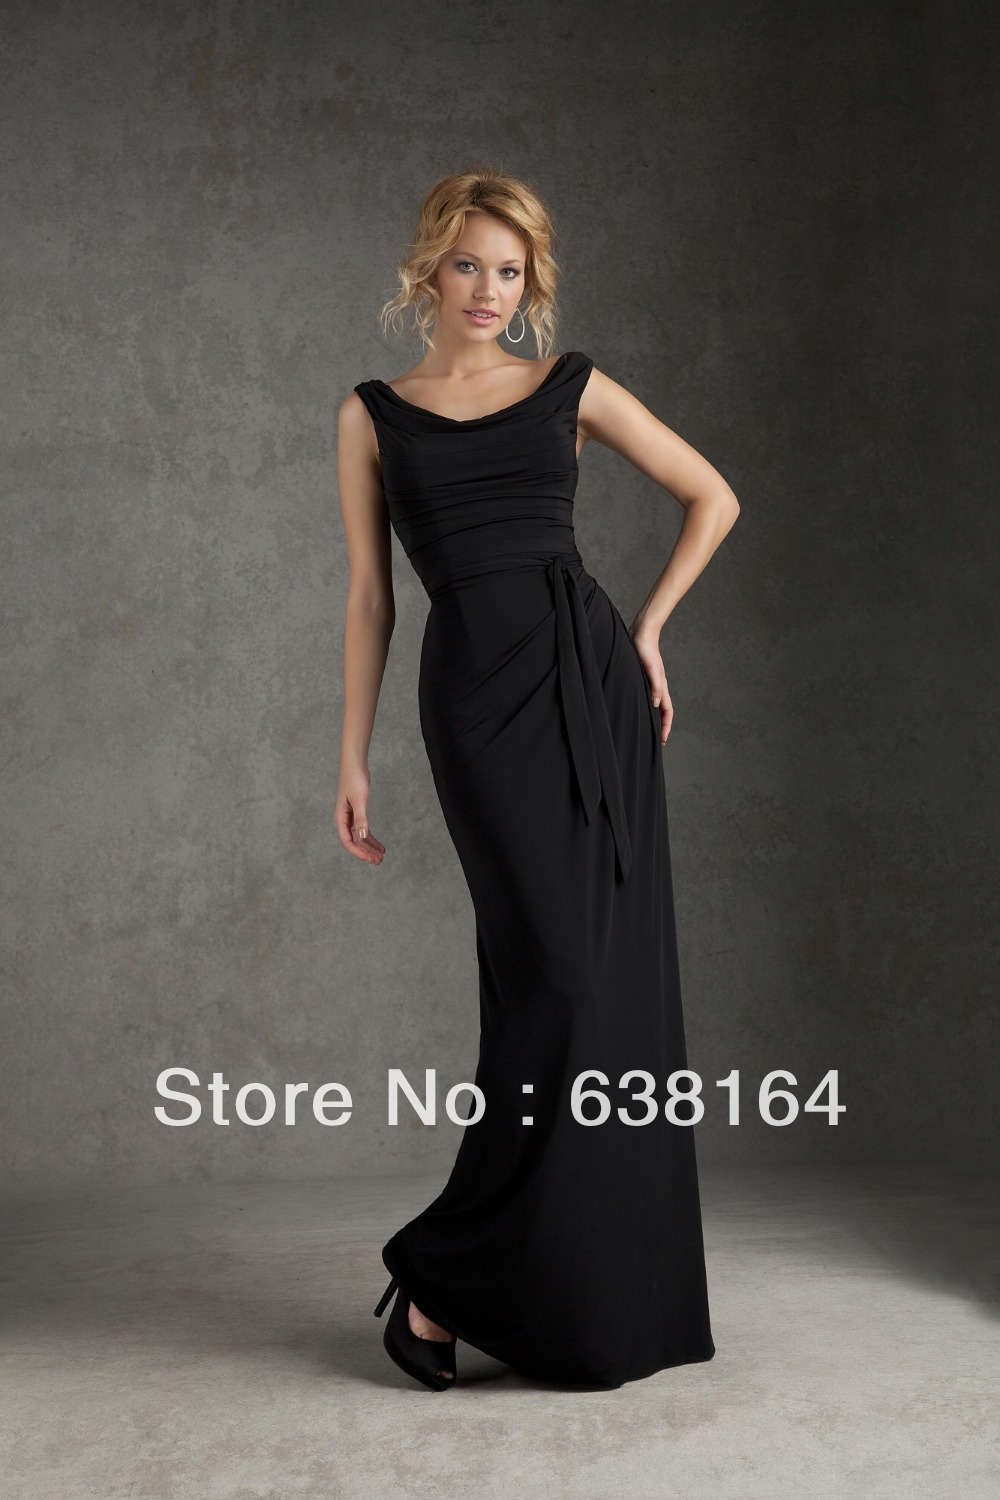 Sleek scoop a line black chiffon pleats floor length vestidos de sleek scoop a line black chiffon pleats floor length vestidos de fiesta bride maid dresses bridesmaid gowns 2014 new arrival in bridesmaid dresses from ombrellifo Images